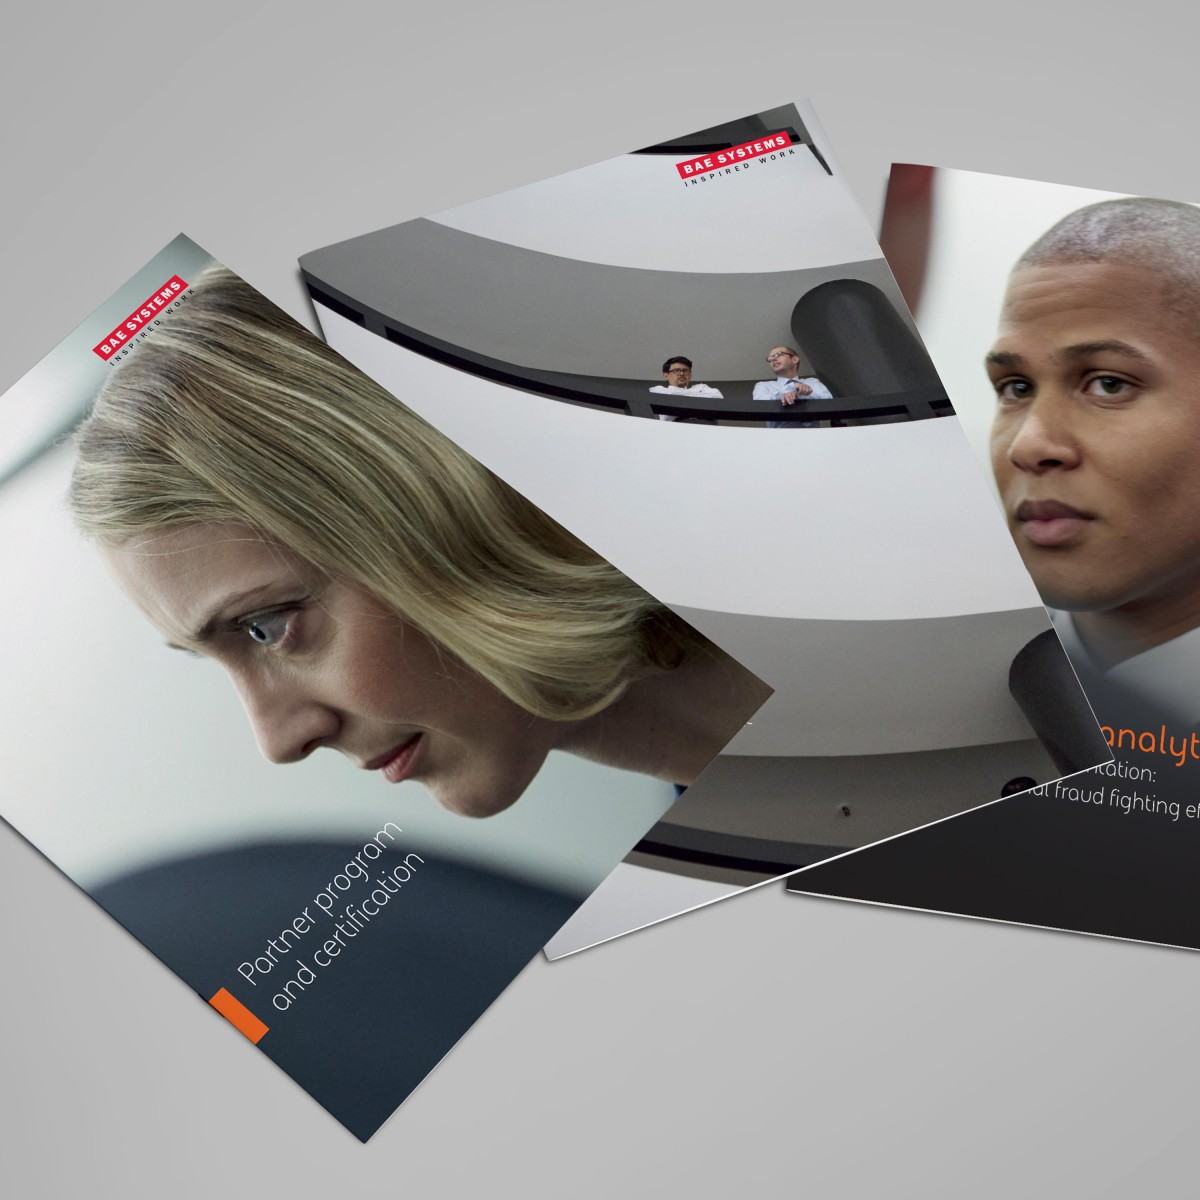 BAE Systems corporate literature